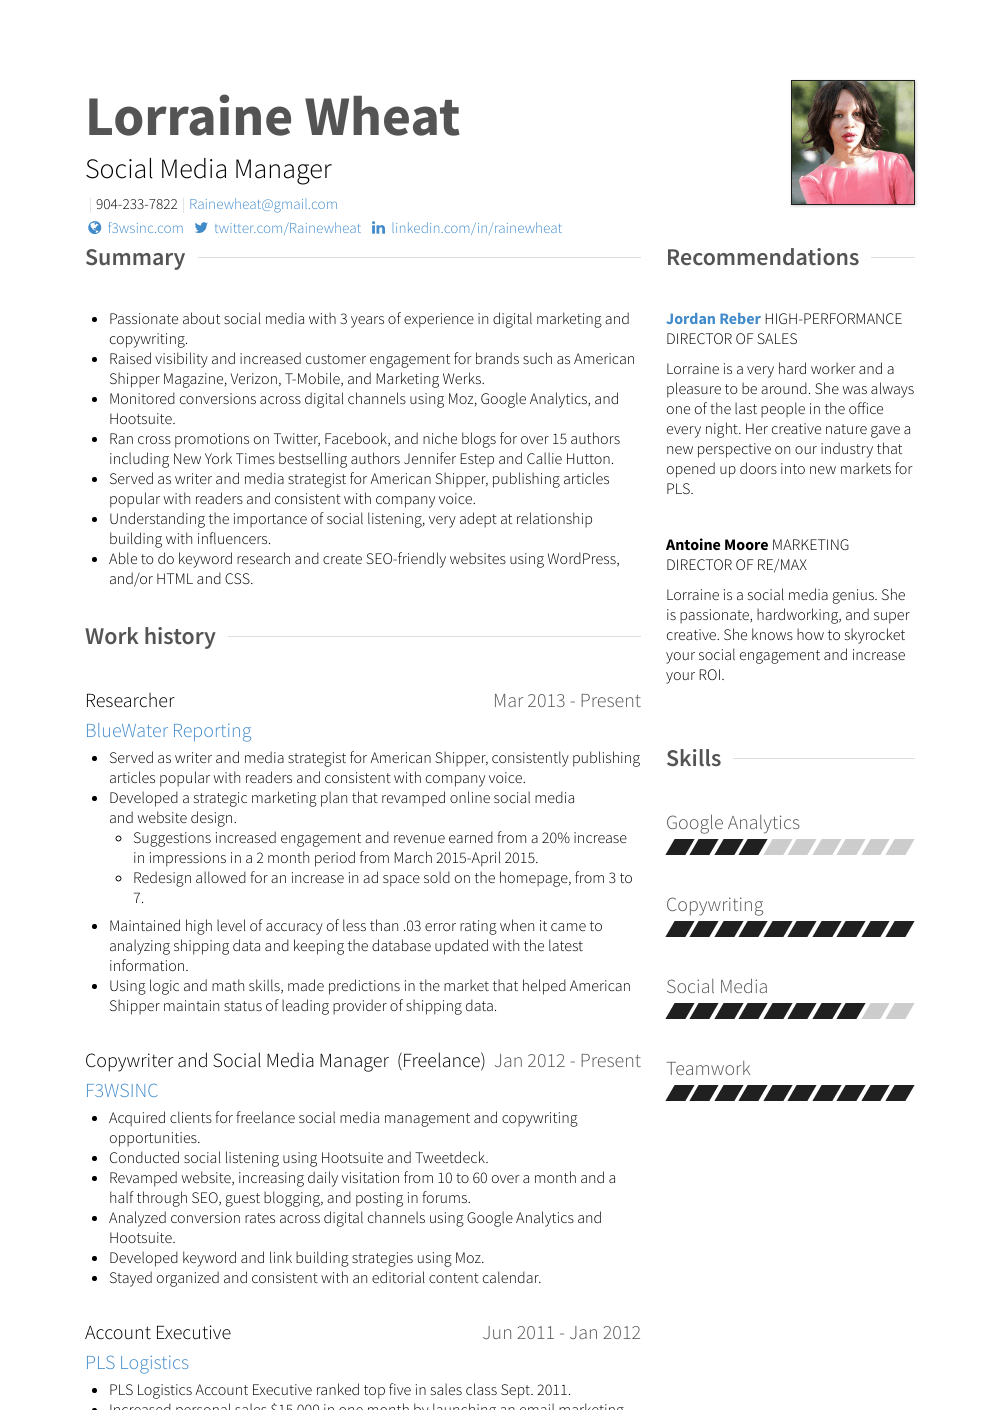 Social Media Manager Resume Samples Amp Templates Visualcv